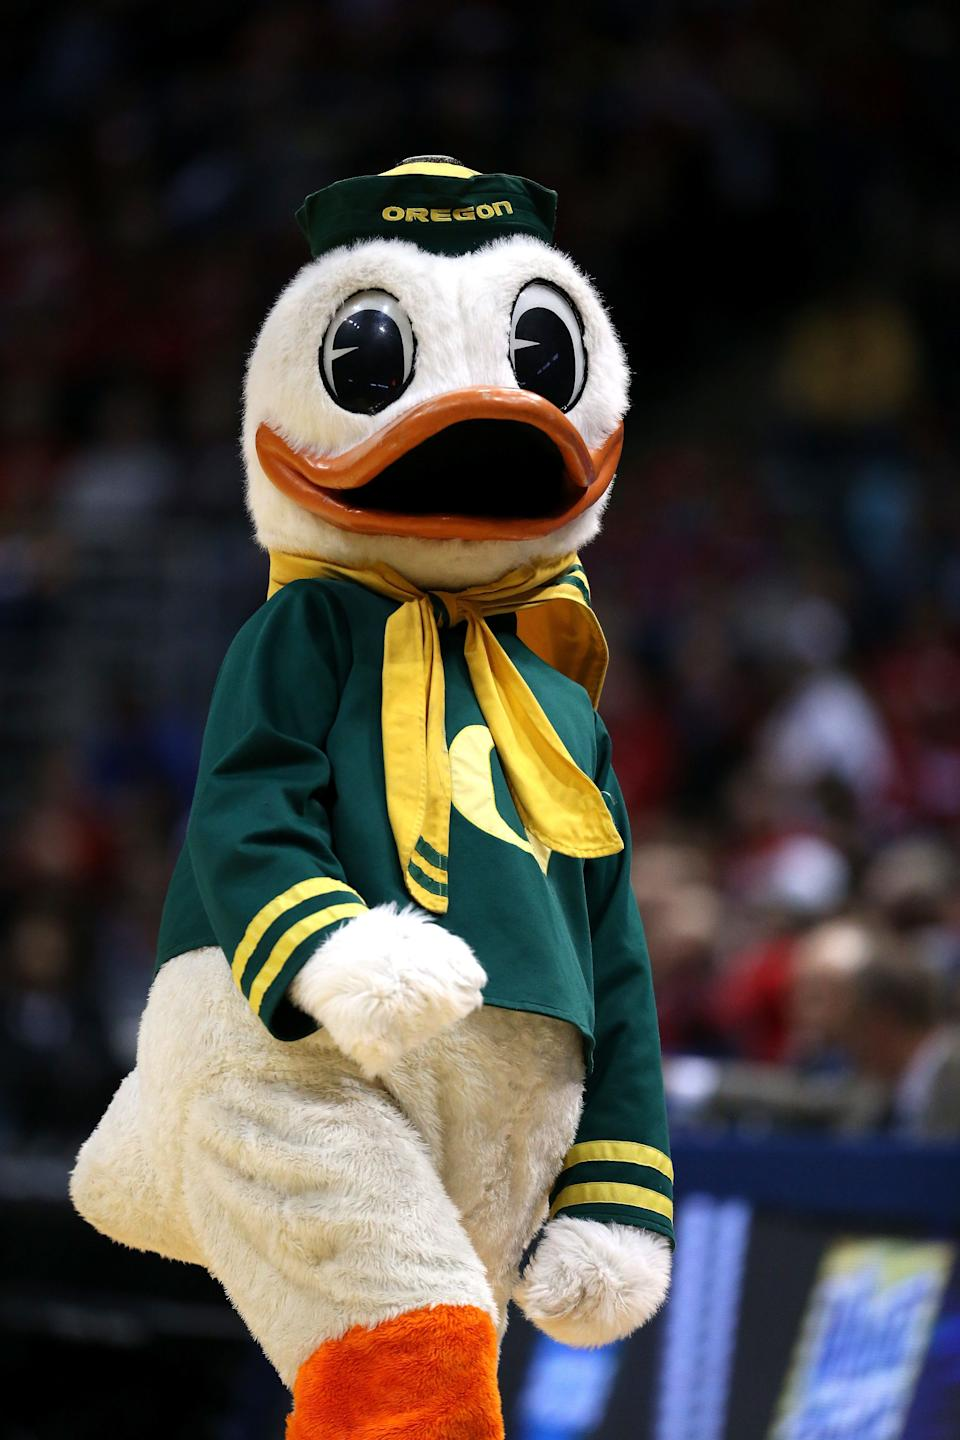 MILWAUKEE, WI - MARCH 20:  The Oregon Ducks mascot performs during the second round game of NCAA Basketball Tournament against the Brigham Young Cougars at BMO Harris Bradley Center on March 20, 2014 in Milwaukee, Wisconsin.  (Photo by Jonathan Daniel/Getty Images)